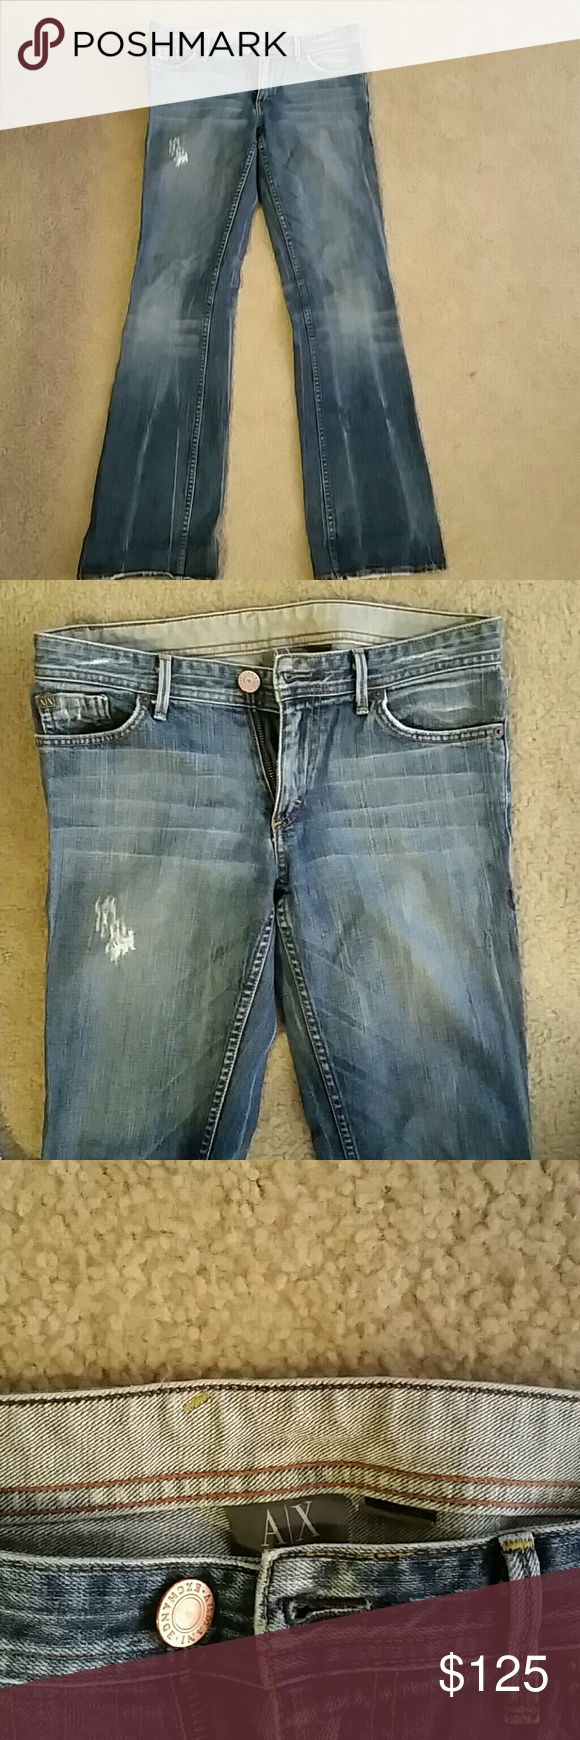 Womens Armani Xchange Jeans Medium color Denim, used but great condition. Fray on front part of the style. Armani Exchange Jeans Boot Cut